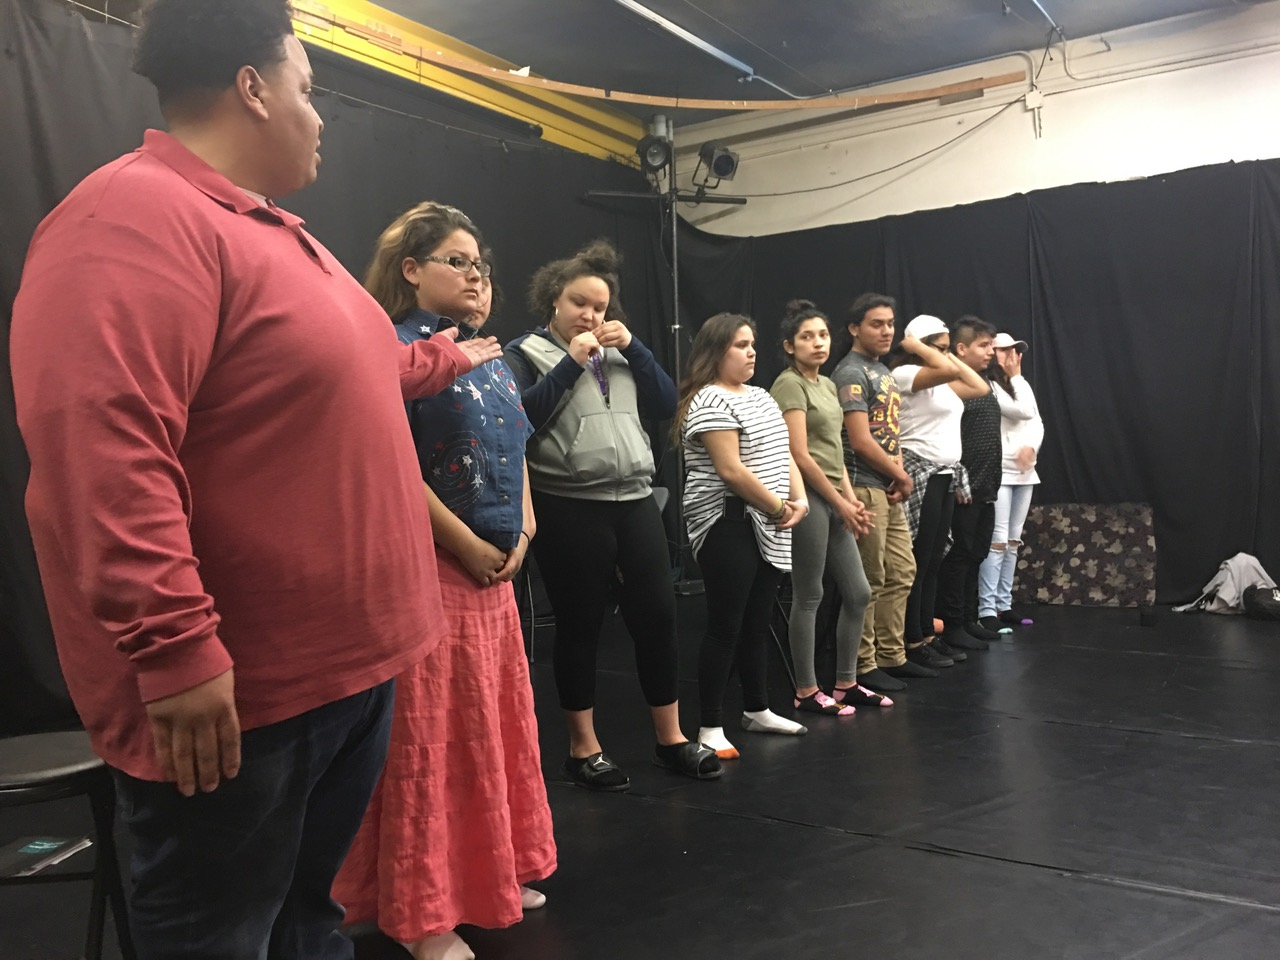 The Ikidowin Peer Educators and Acting Ensemble introduce themselves at the 2017 Fellowship Convening opening at Pangea World Theater.